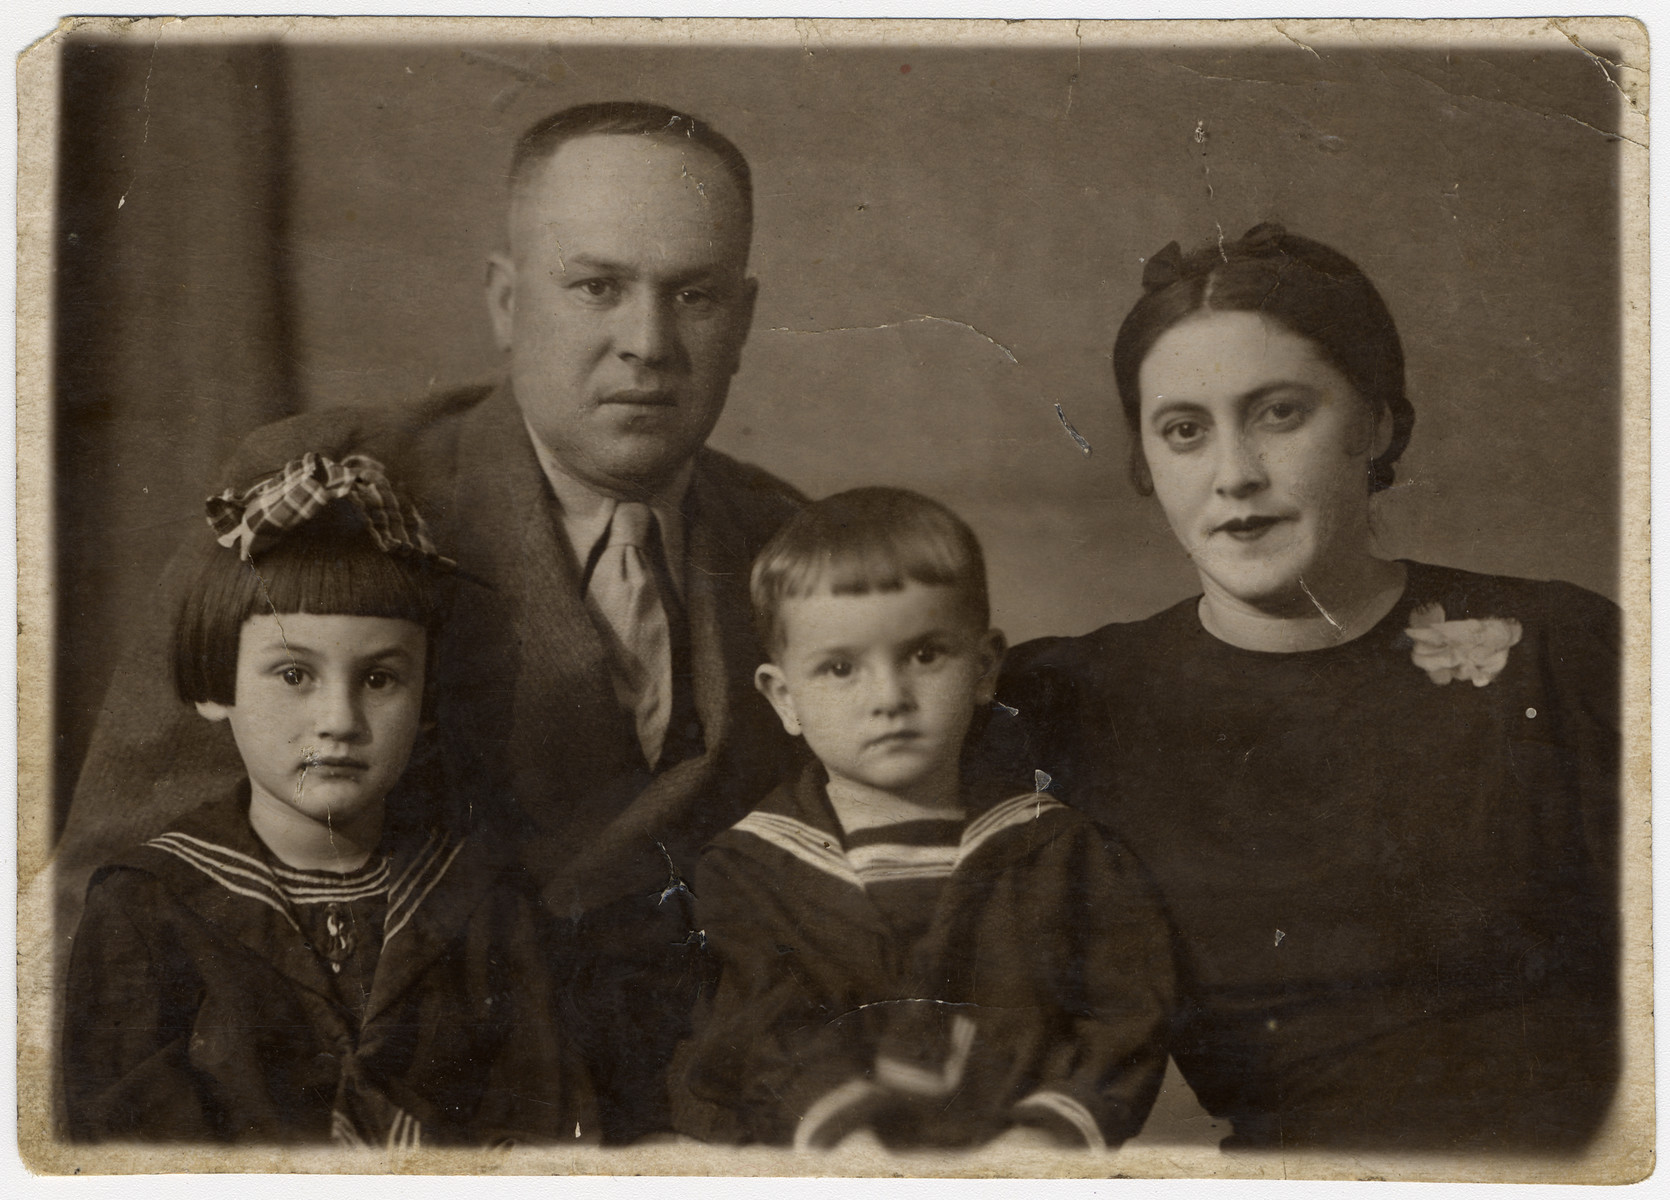 Studio portrait of Sonia (nee Ziegelman) and Pinchas Khanuk and their two children Bella and Izya.